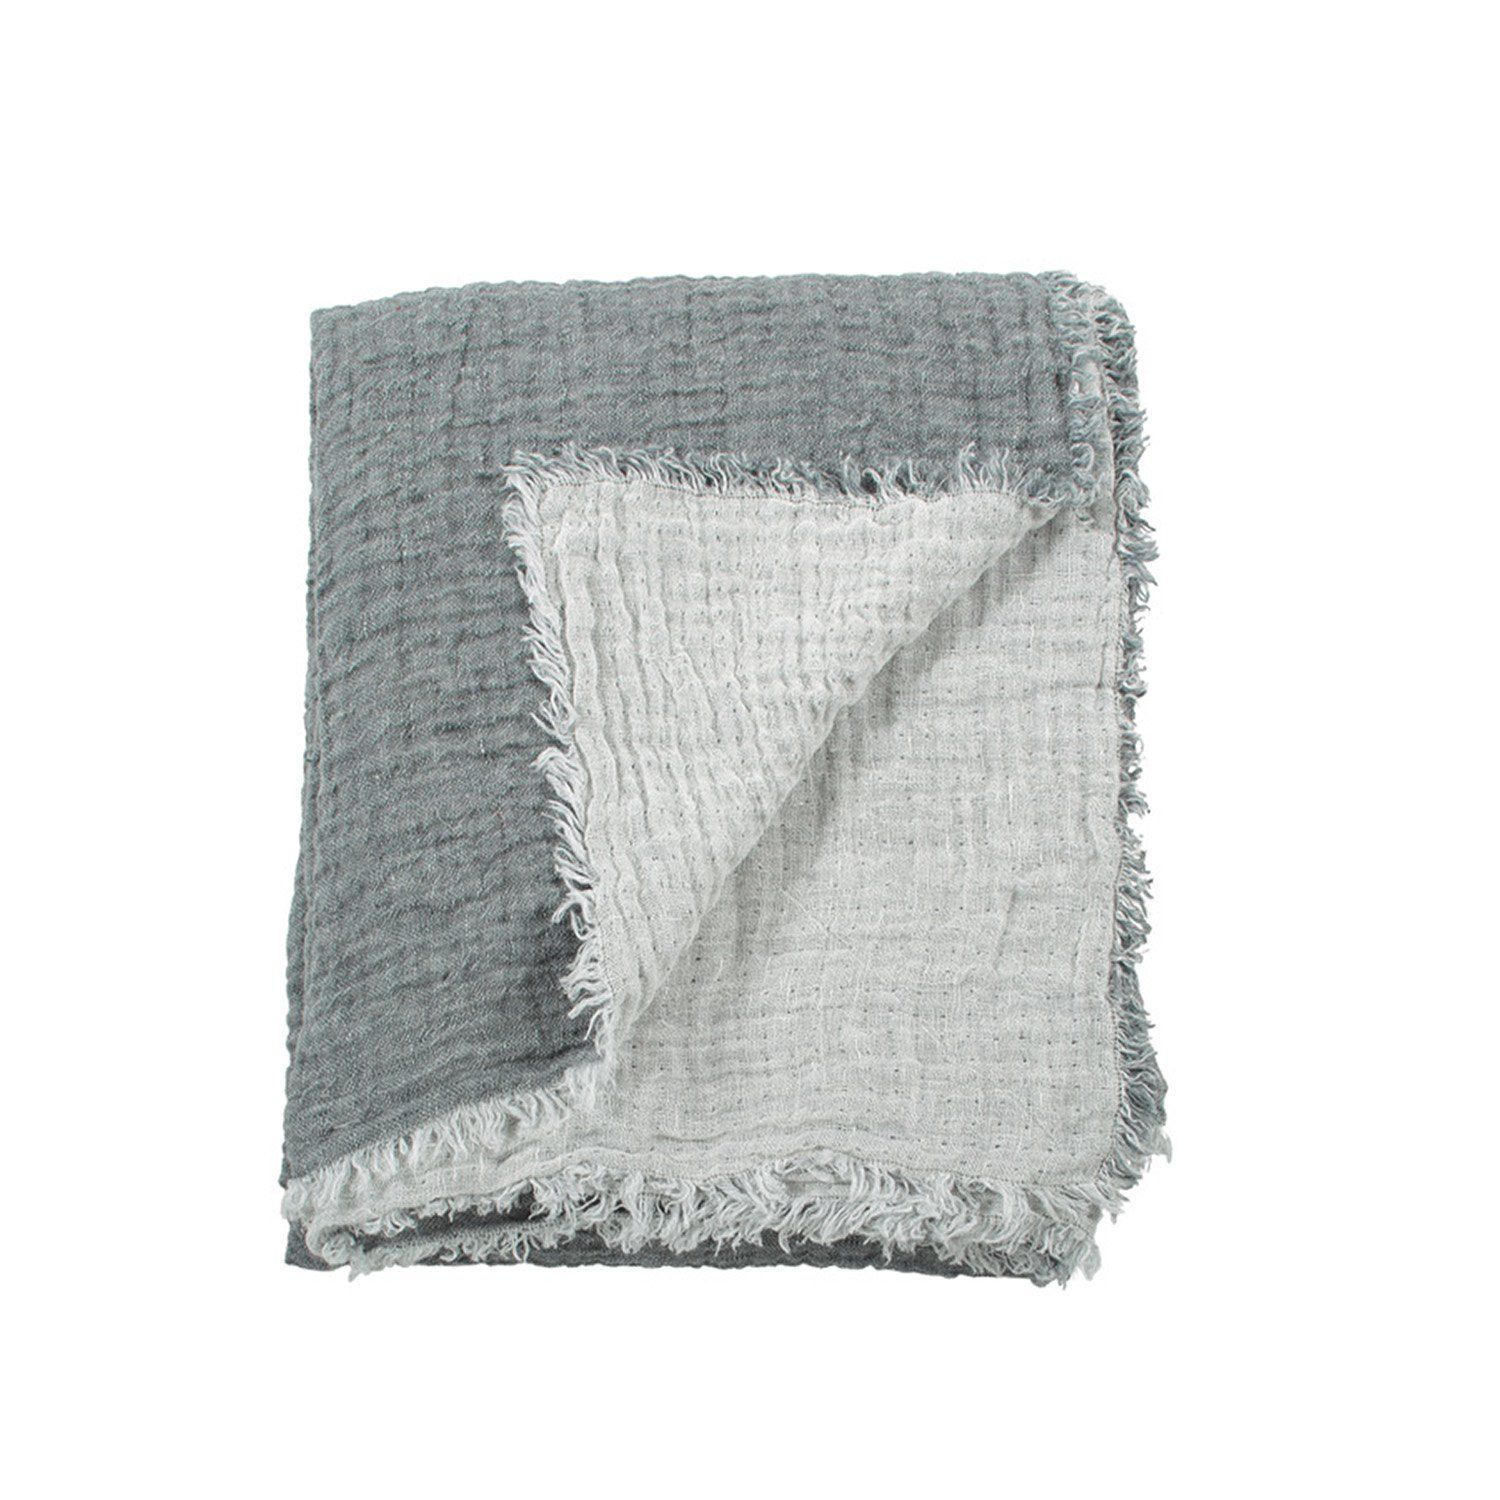 Washed Linen Throw Vintage Cushions Bed Throws Modern Cushions